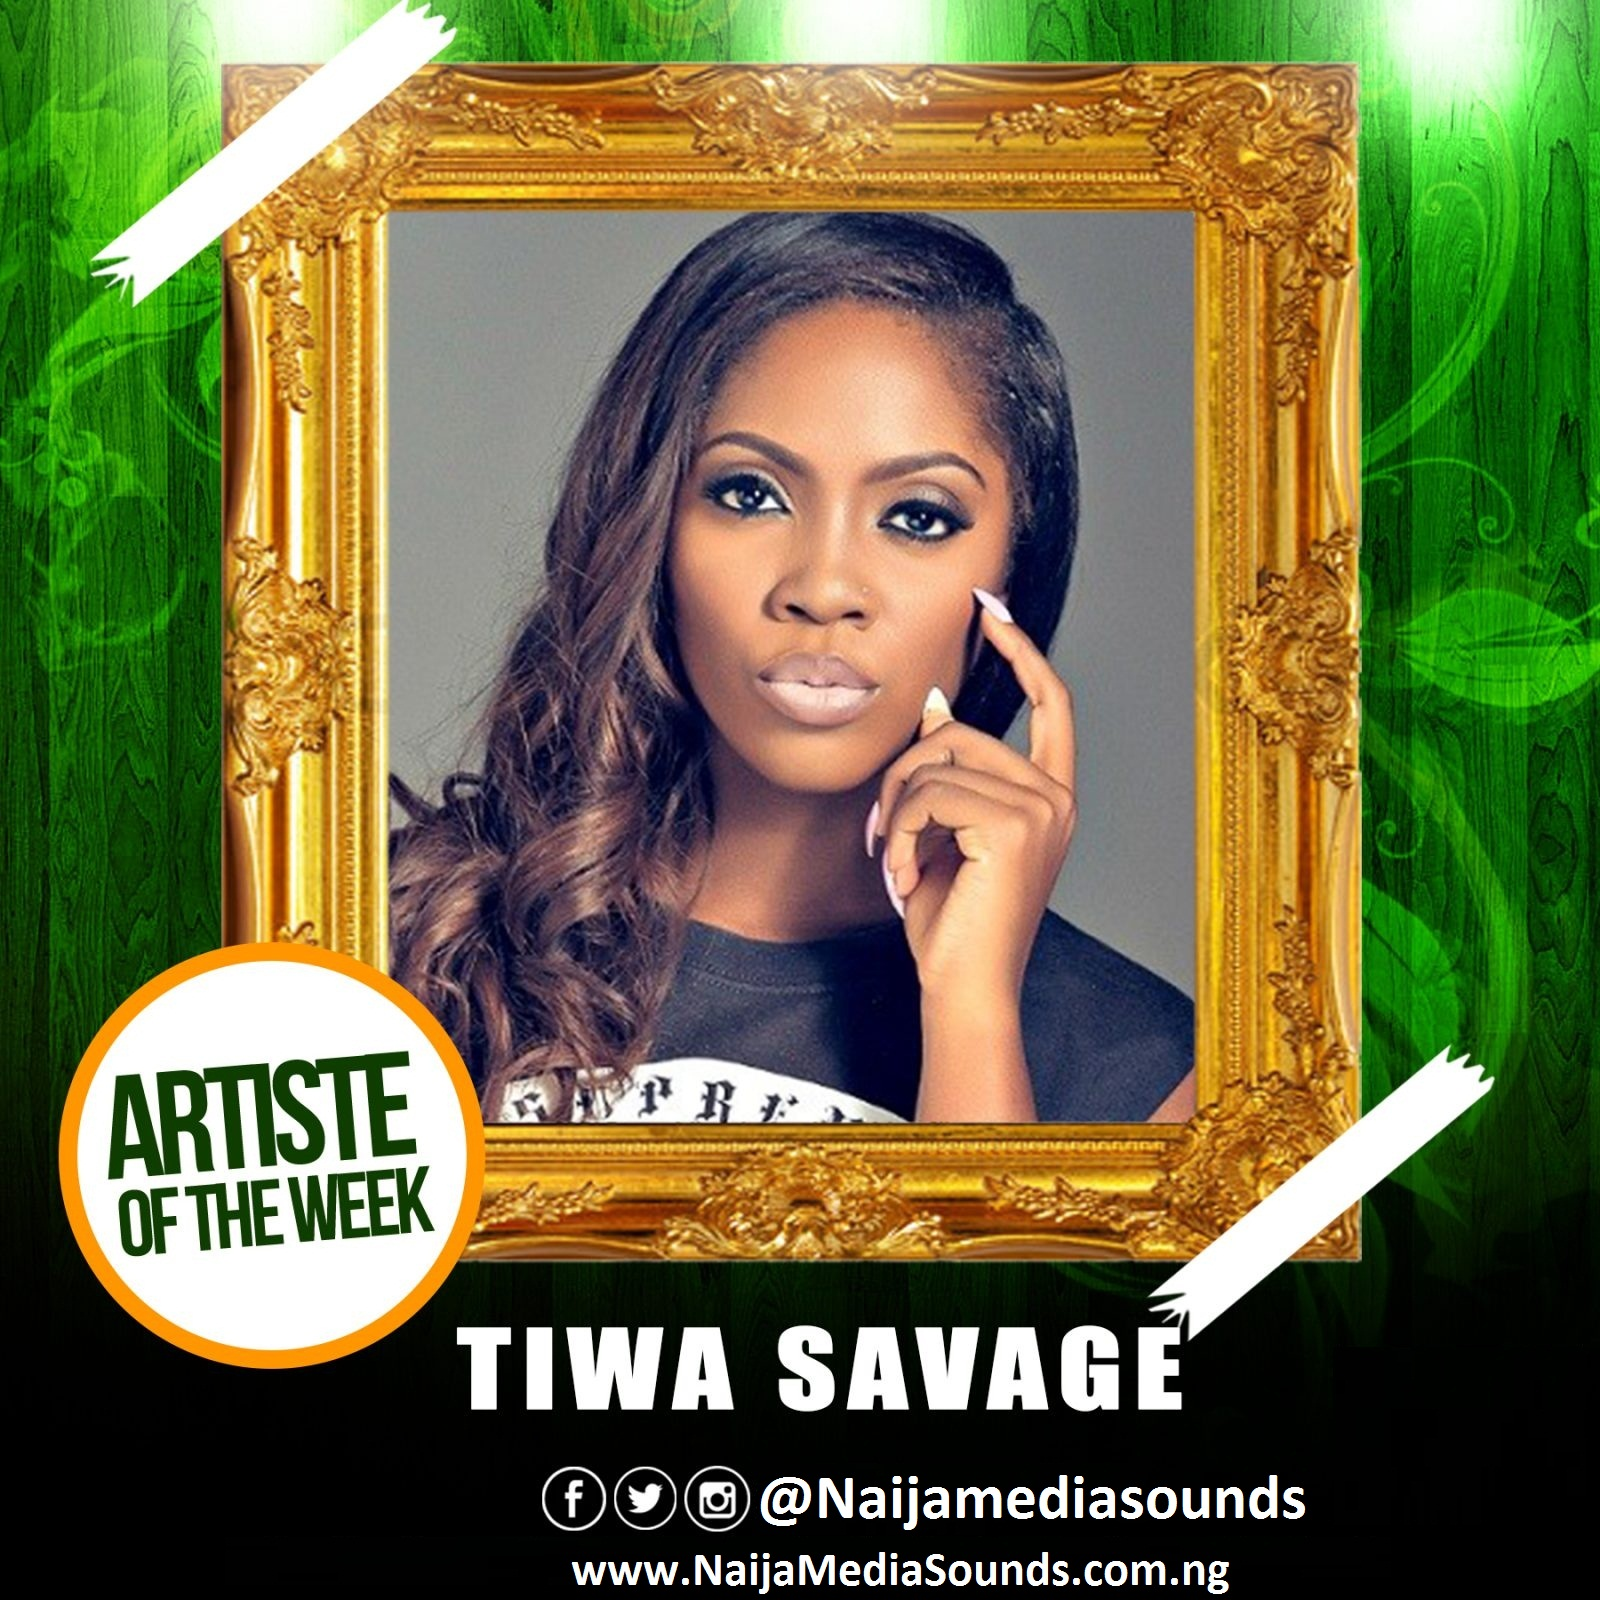 9jamediasounds Artiste Of The Week